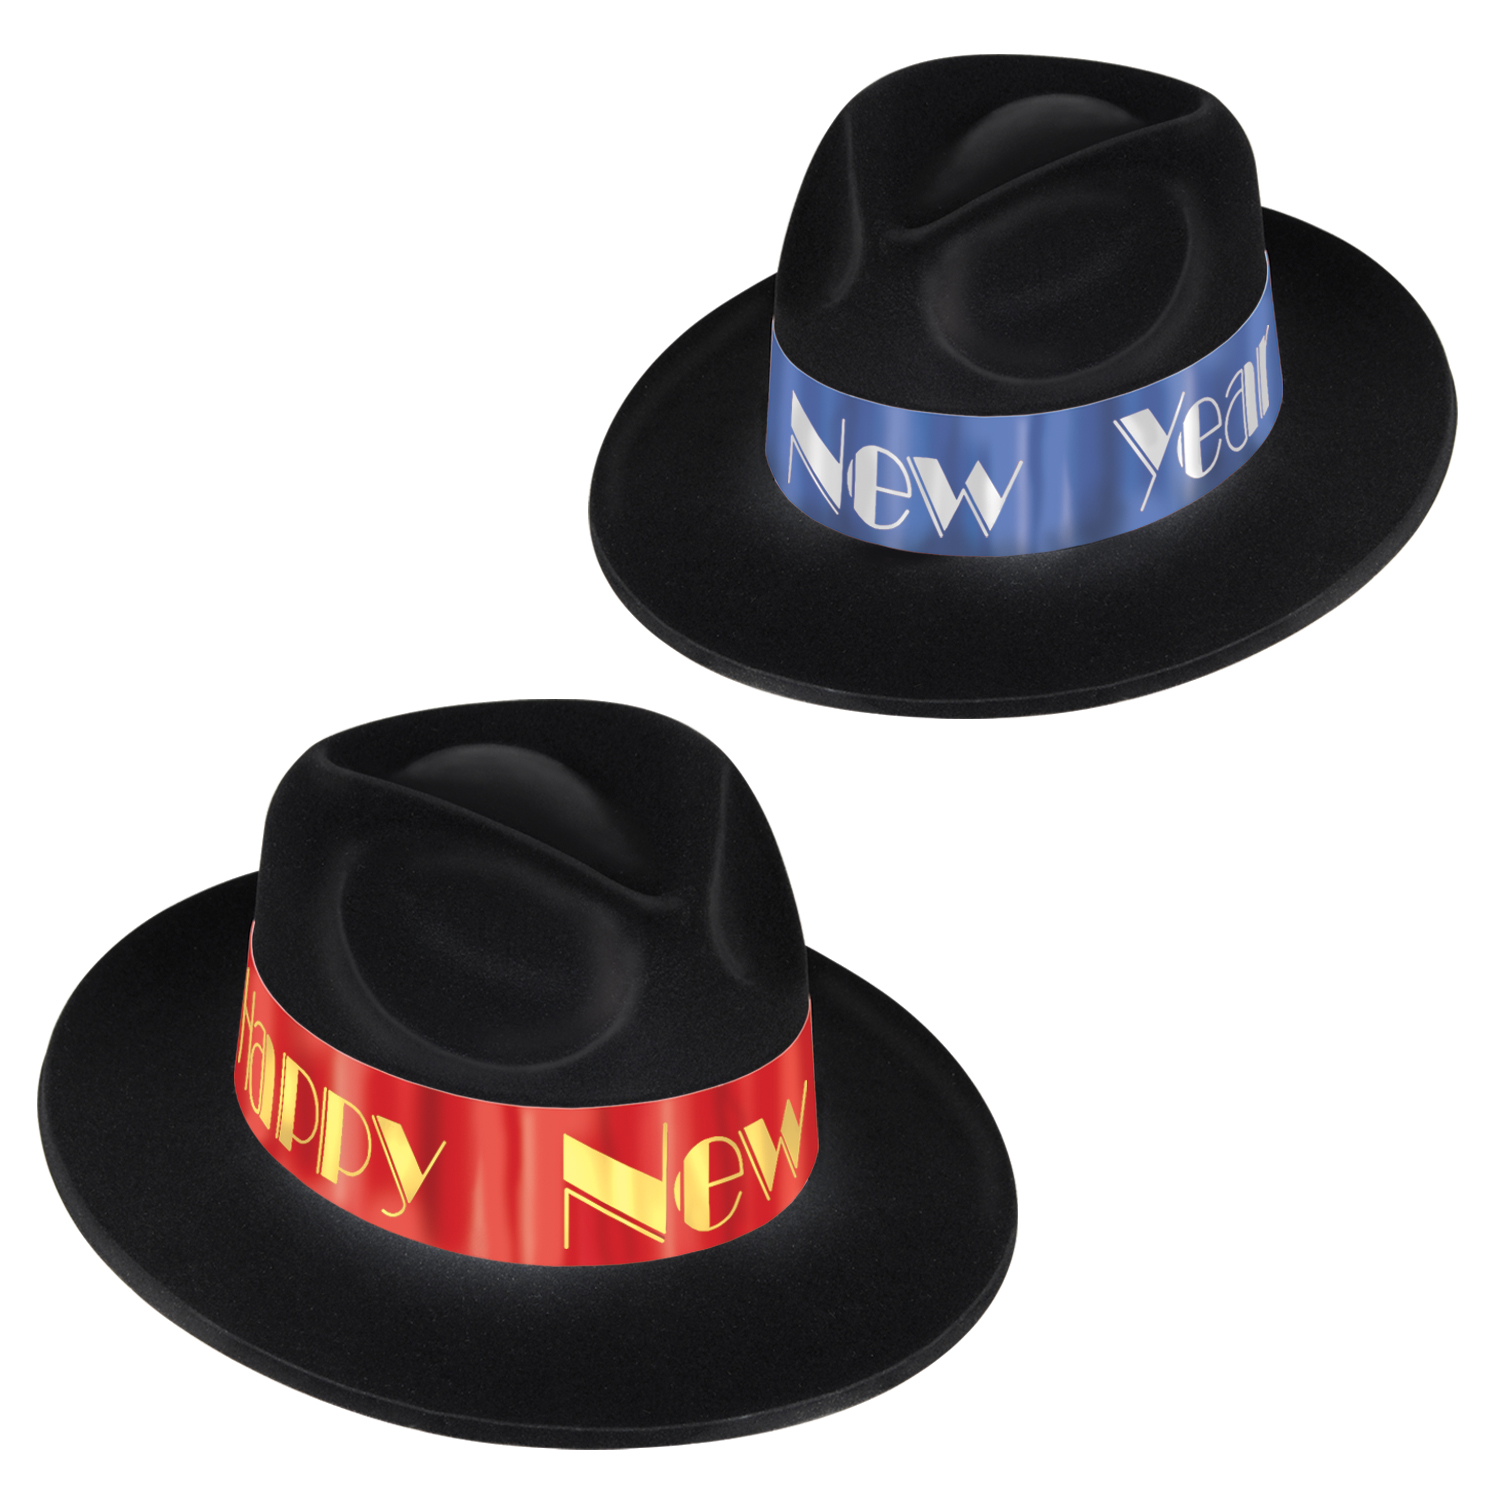 Fire & Ice Fedoras black asstd blue & red